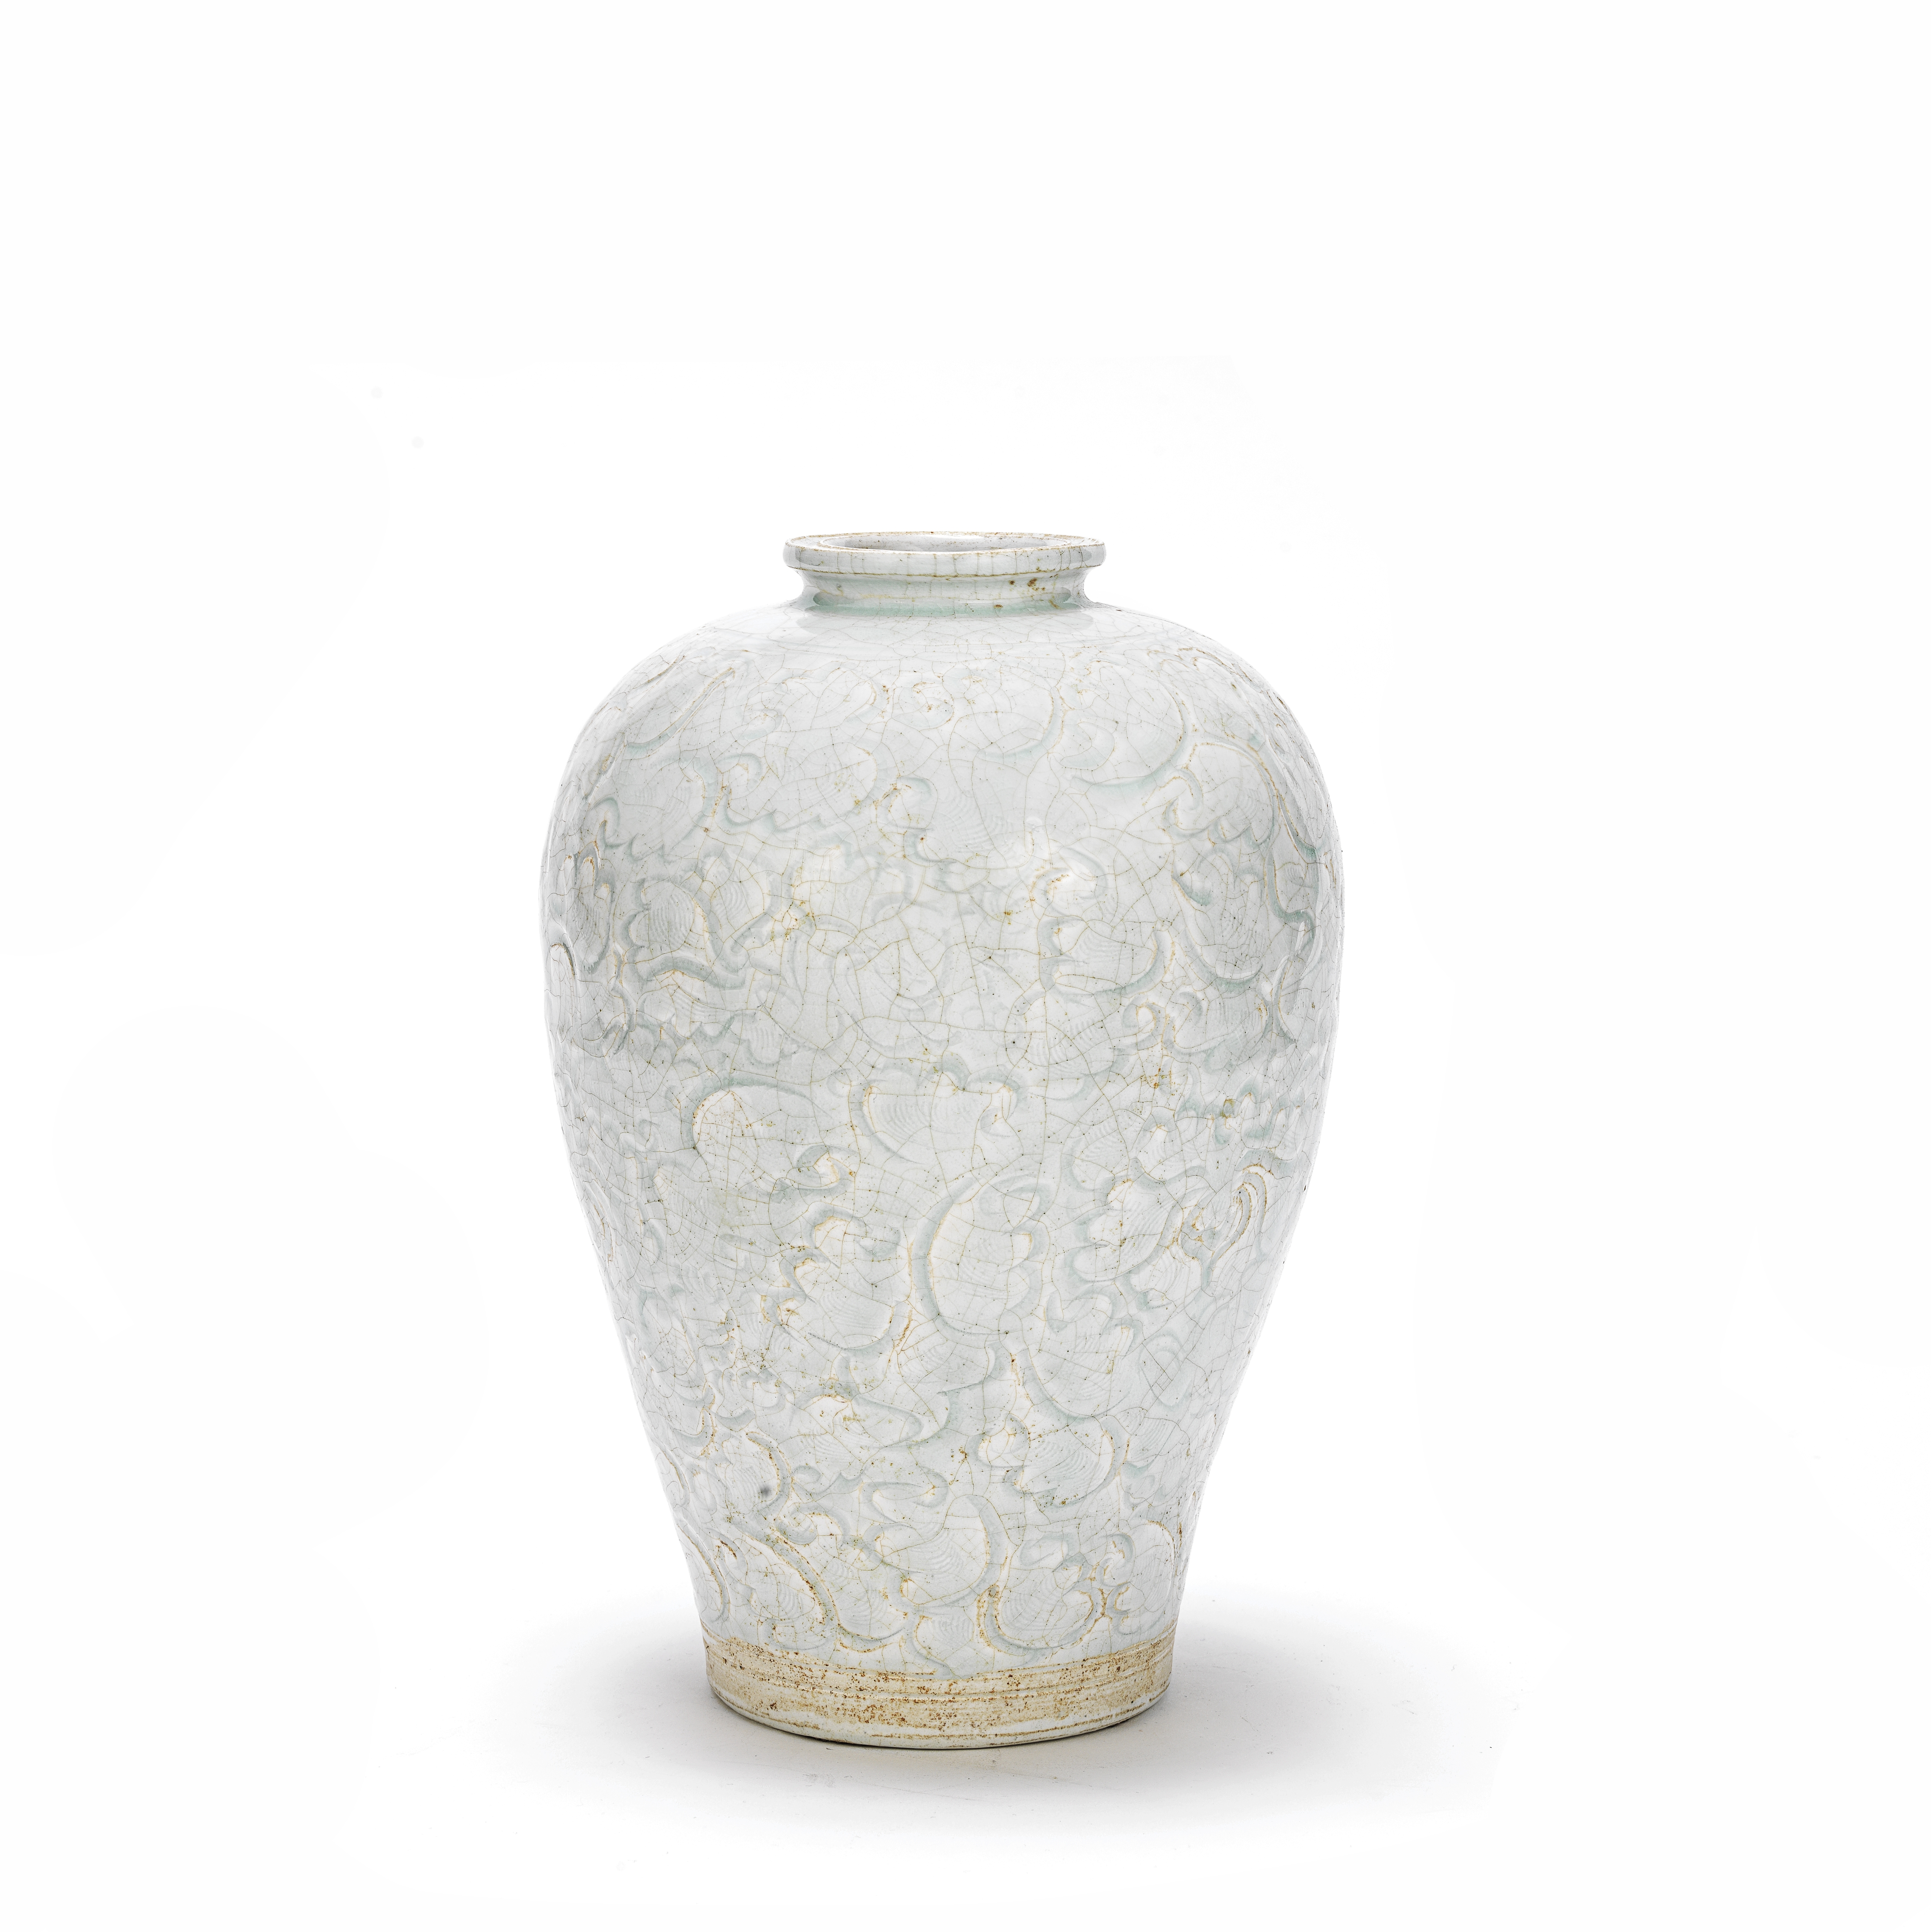 A CARVED QINGBAI 'LOTUS' VASE, MEIPING Southern Song Dynasty